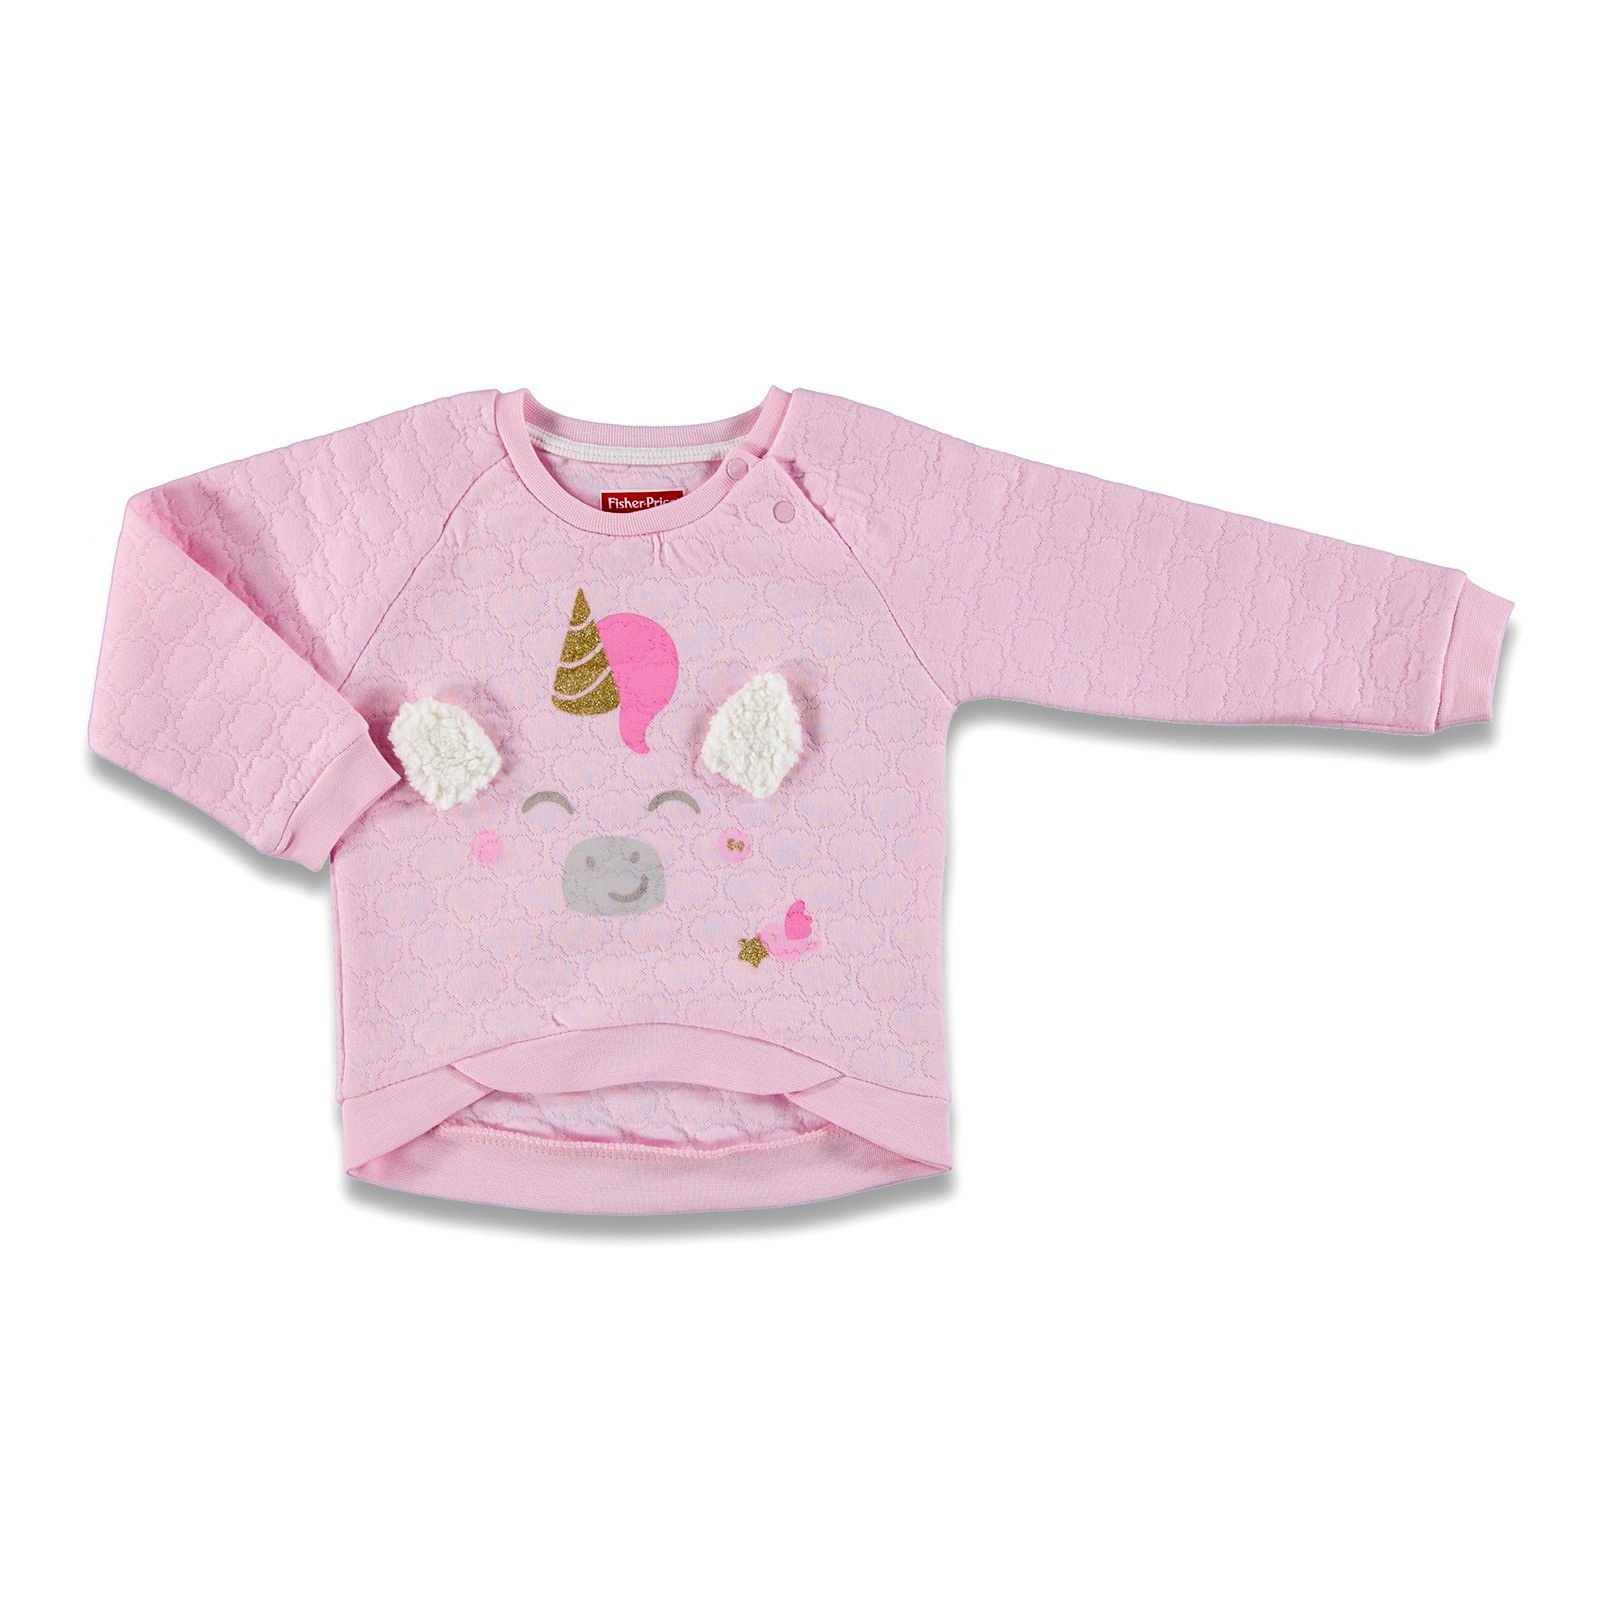 Ebebek Fisher Price Magical Unicorn Baby Sweatshirt